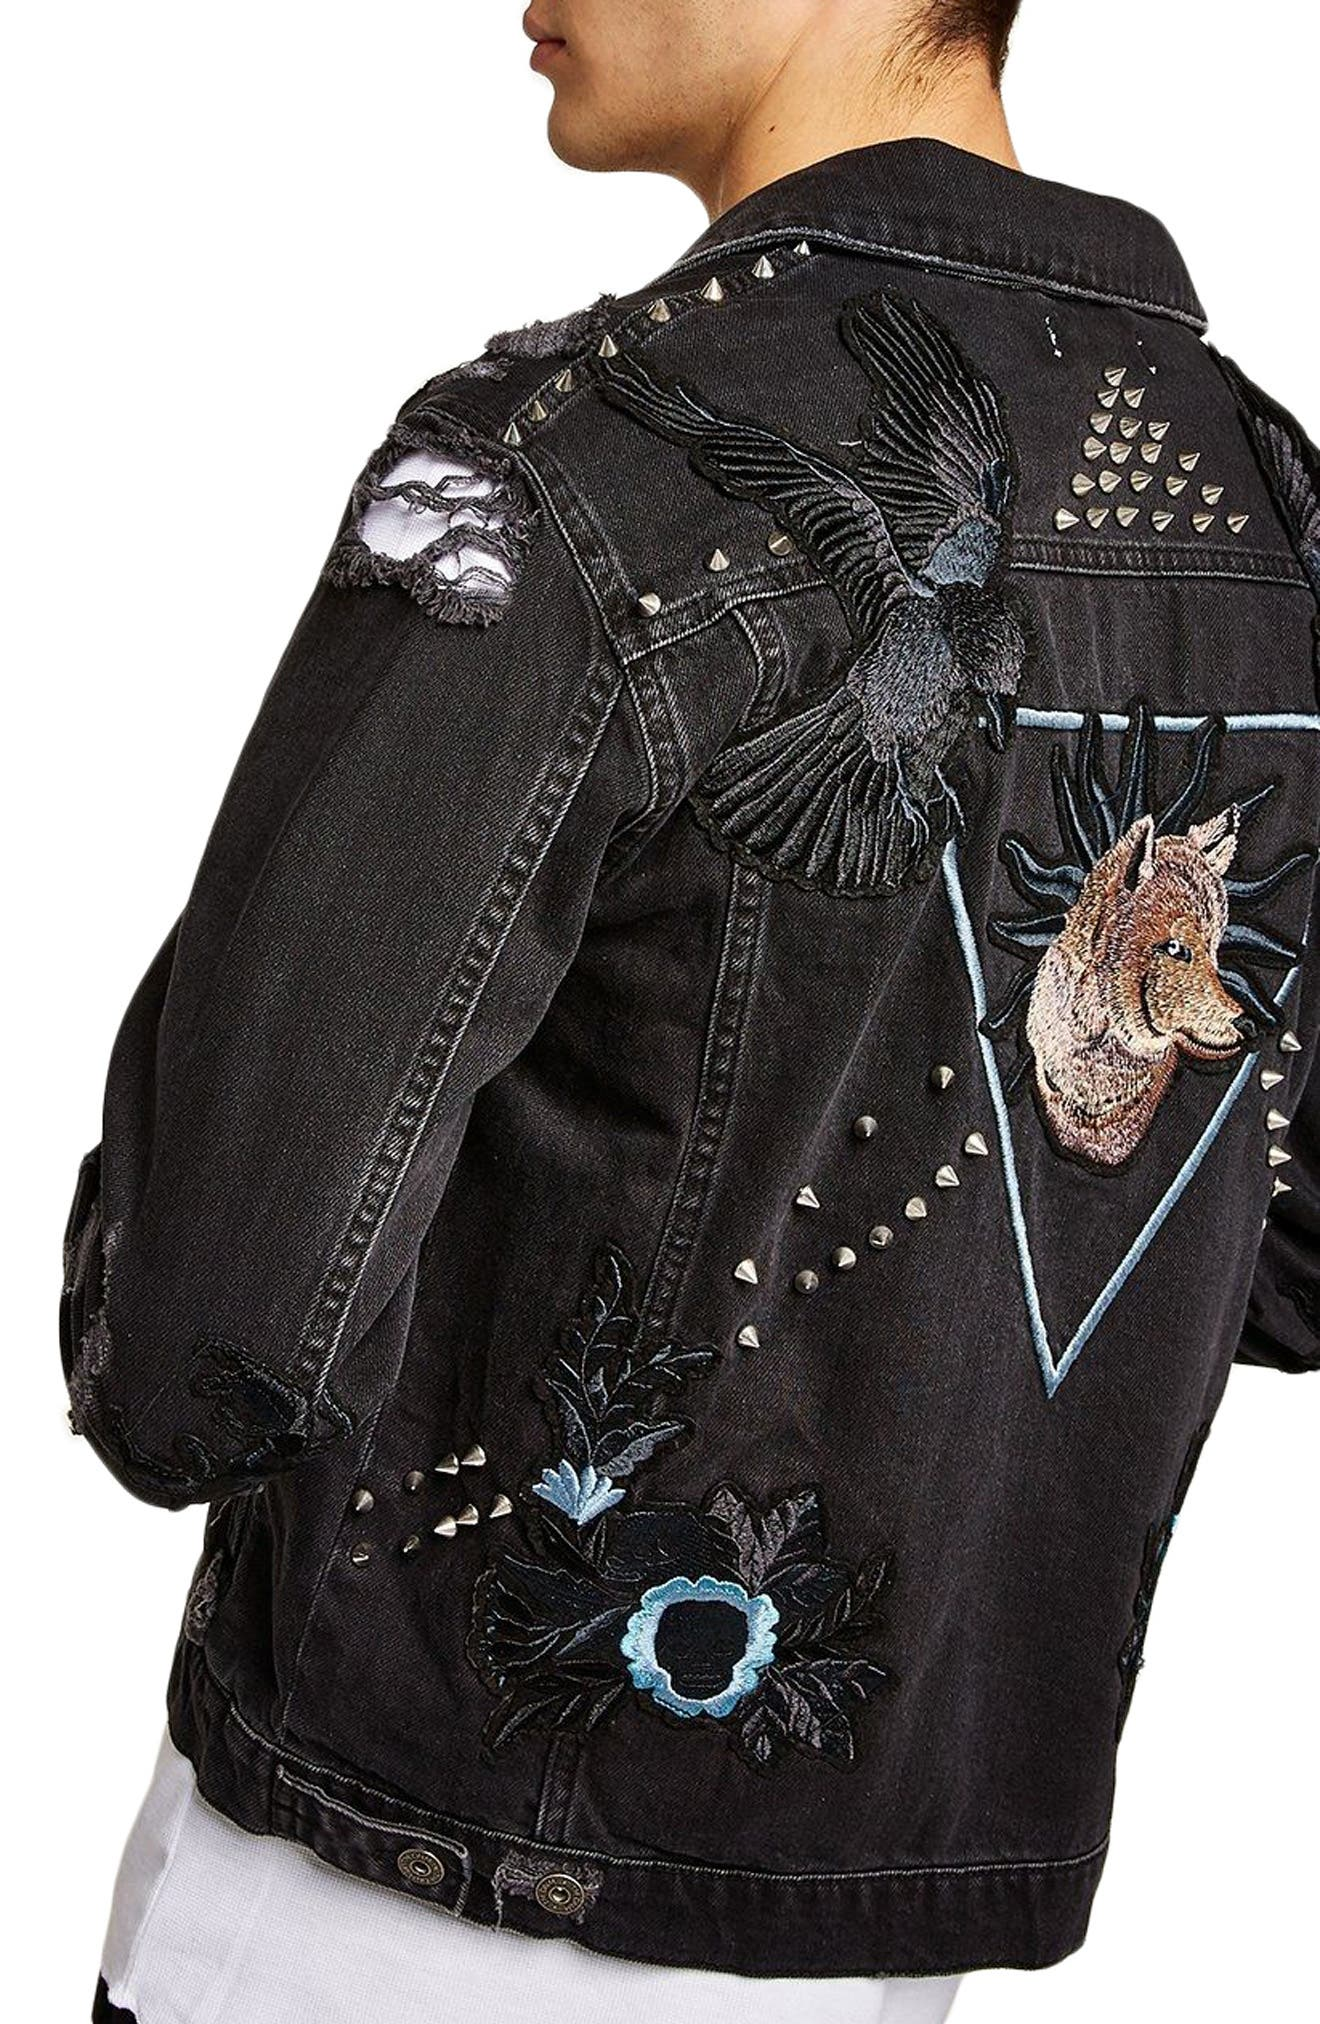 Sleepy Hollow Slim Fit Denim Jacket with Patches,                             Alternate thumbnail 2, color,                             Black Multi